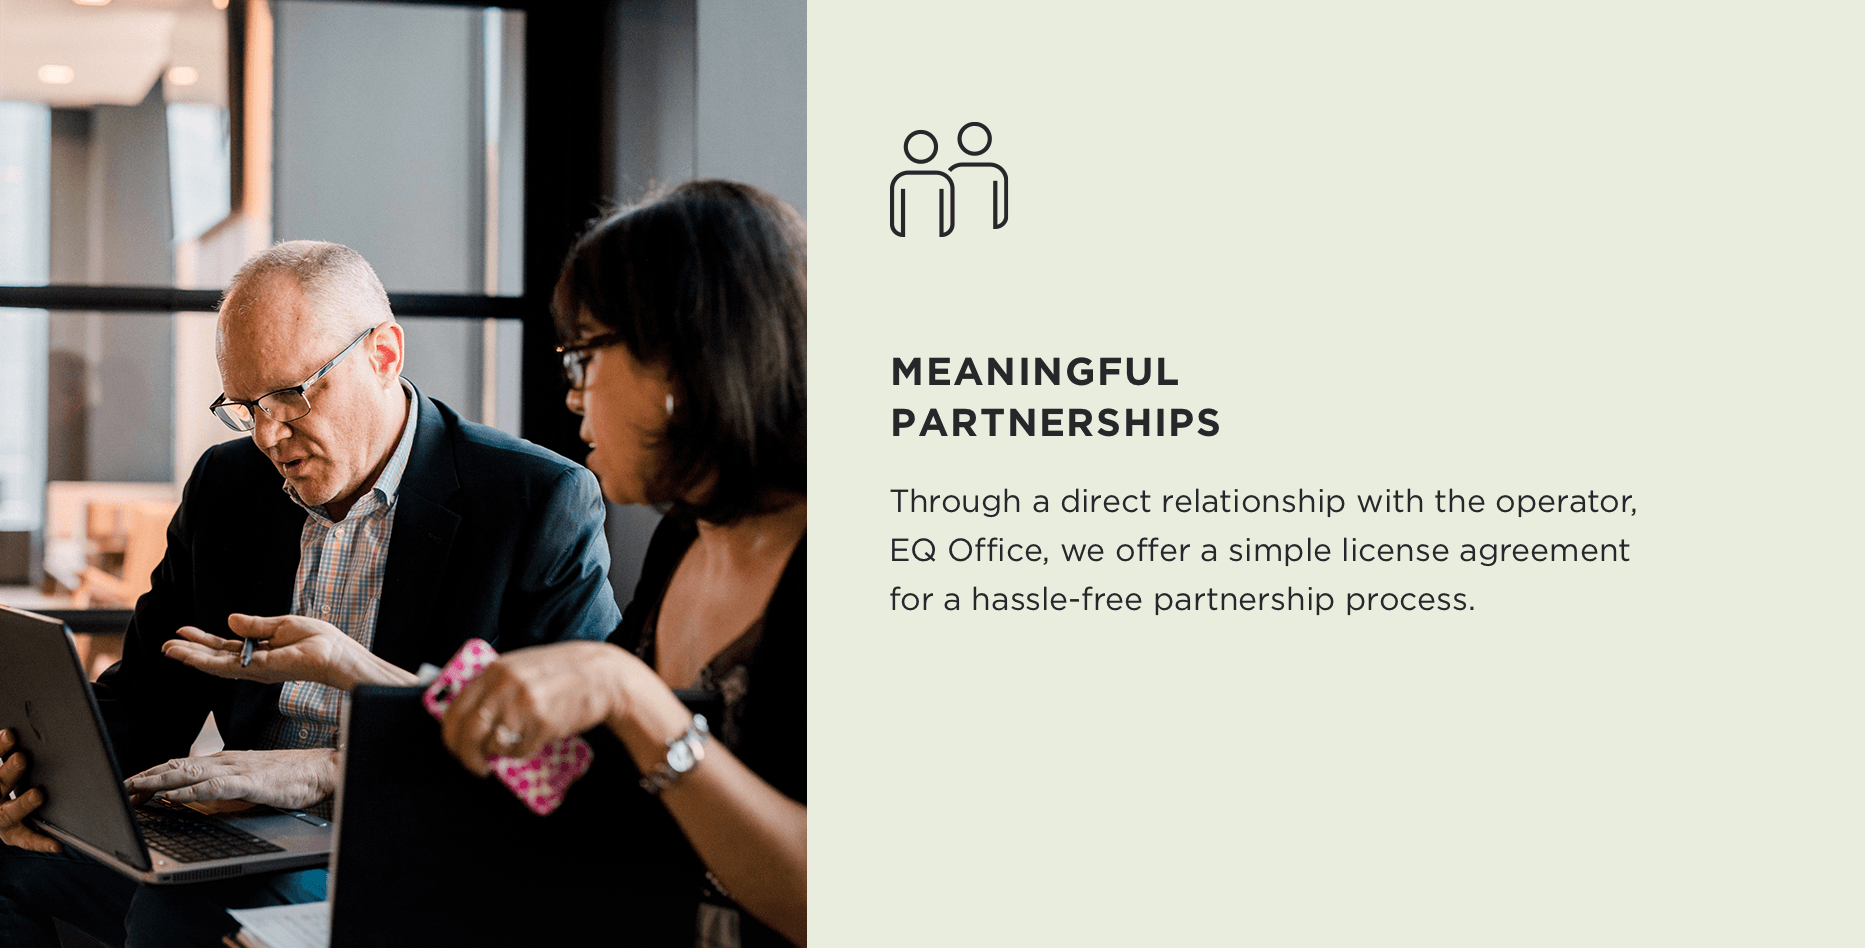 Meaningful Partnerships